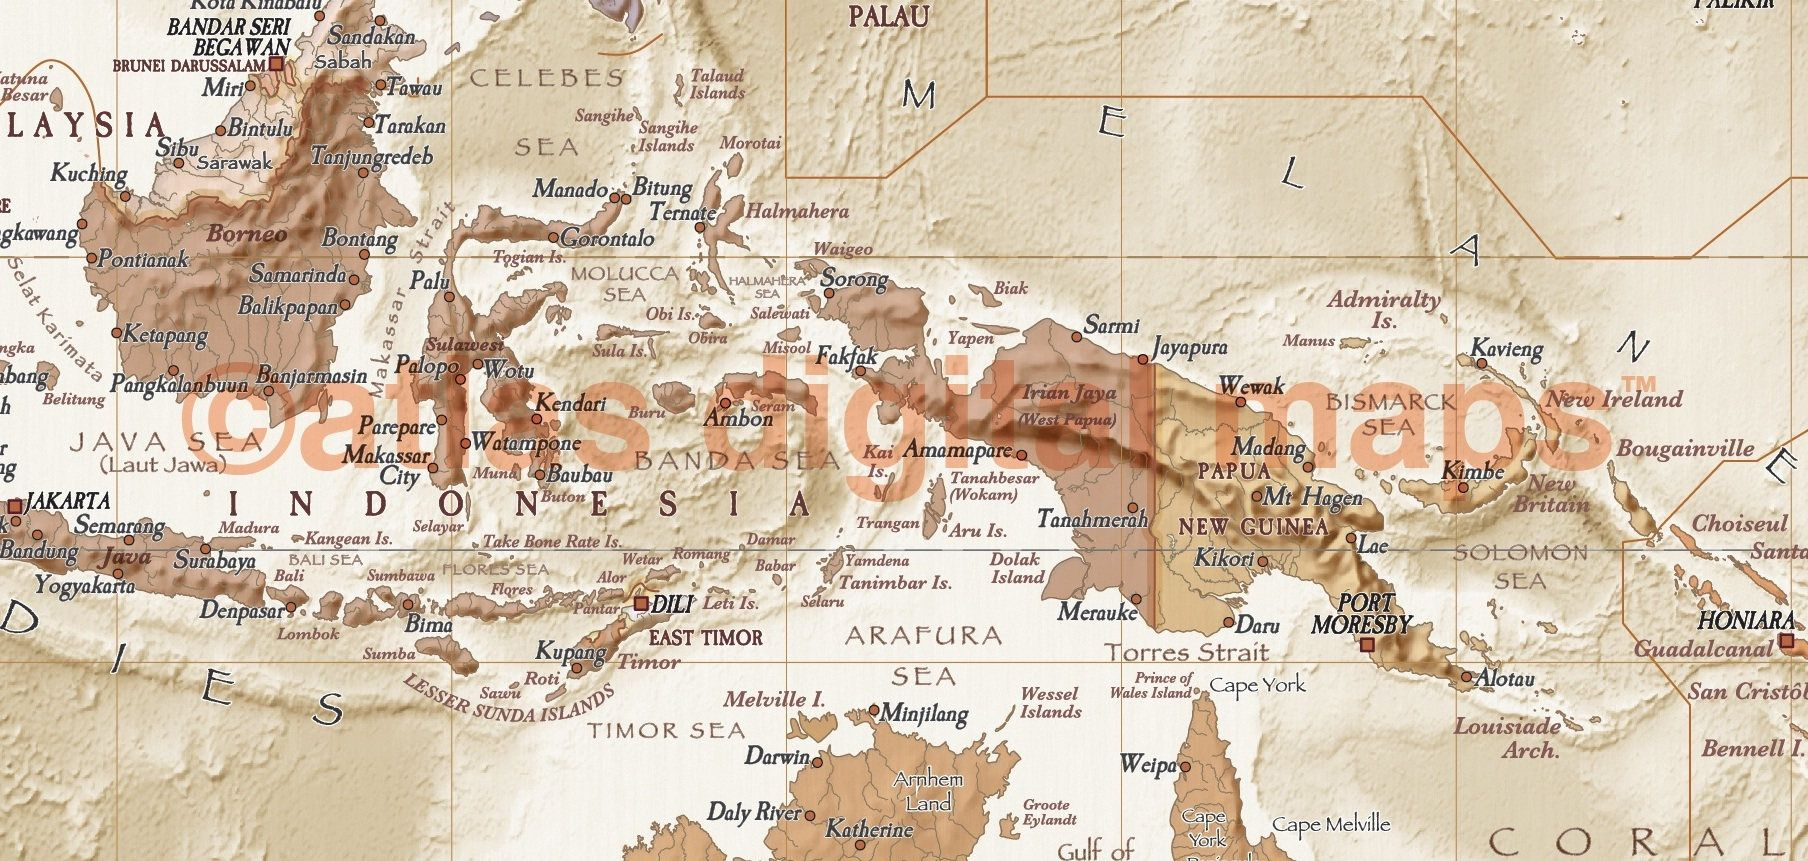 Canvas world map canvas antique vintage style map of the world canvas world map canvas antique vintage style map of the world physical political world wall map sand rolledlarge gumiabroncs Image collections